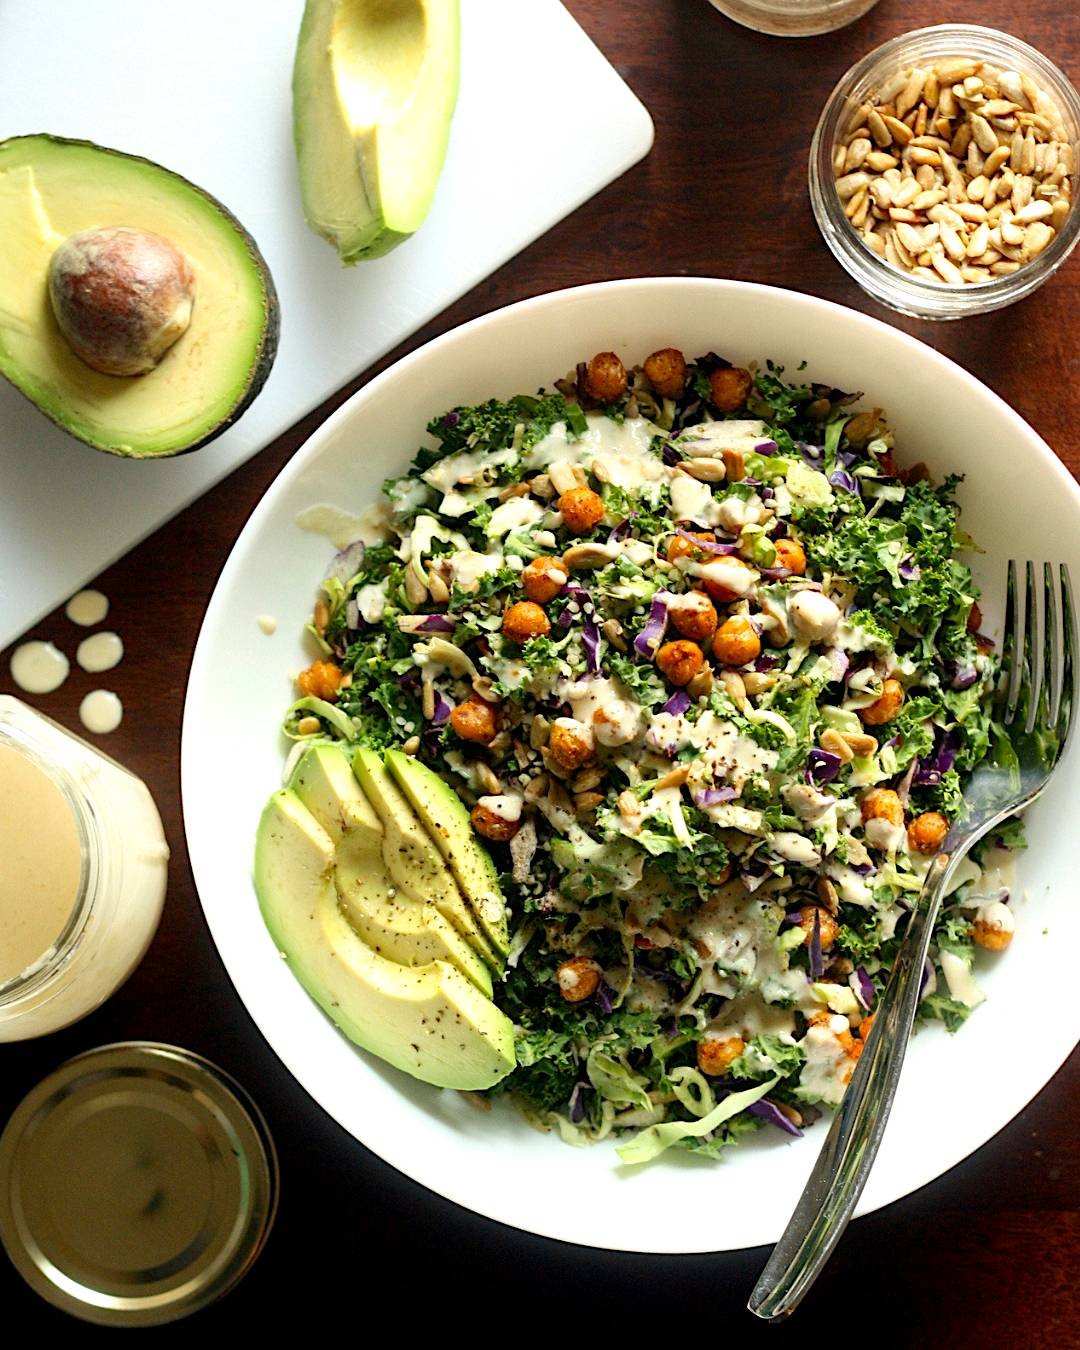 Large bowl containing chopped salad, chickpeas, sliced avocado and tahini dressing